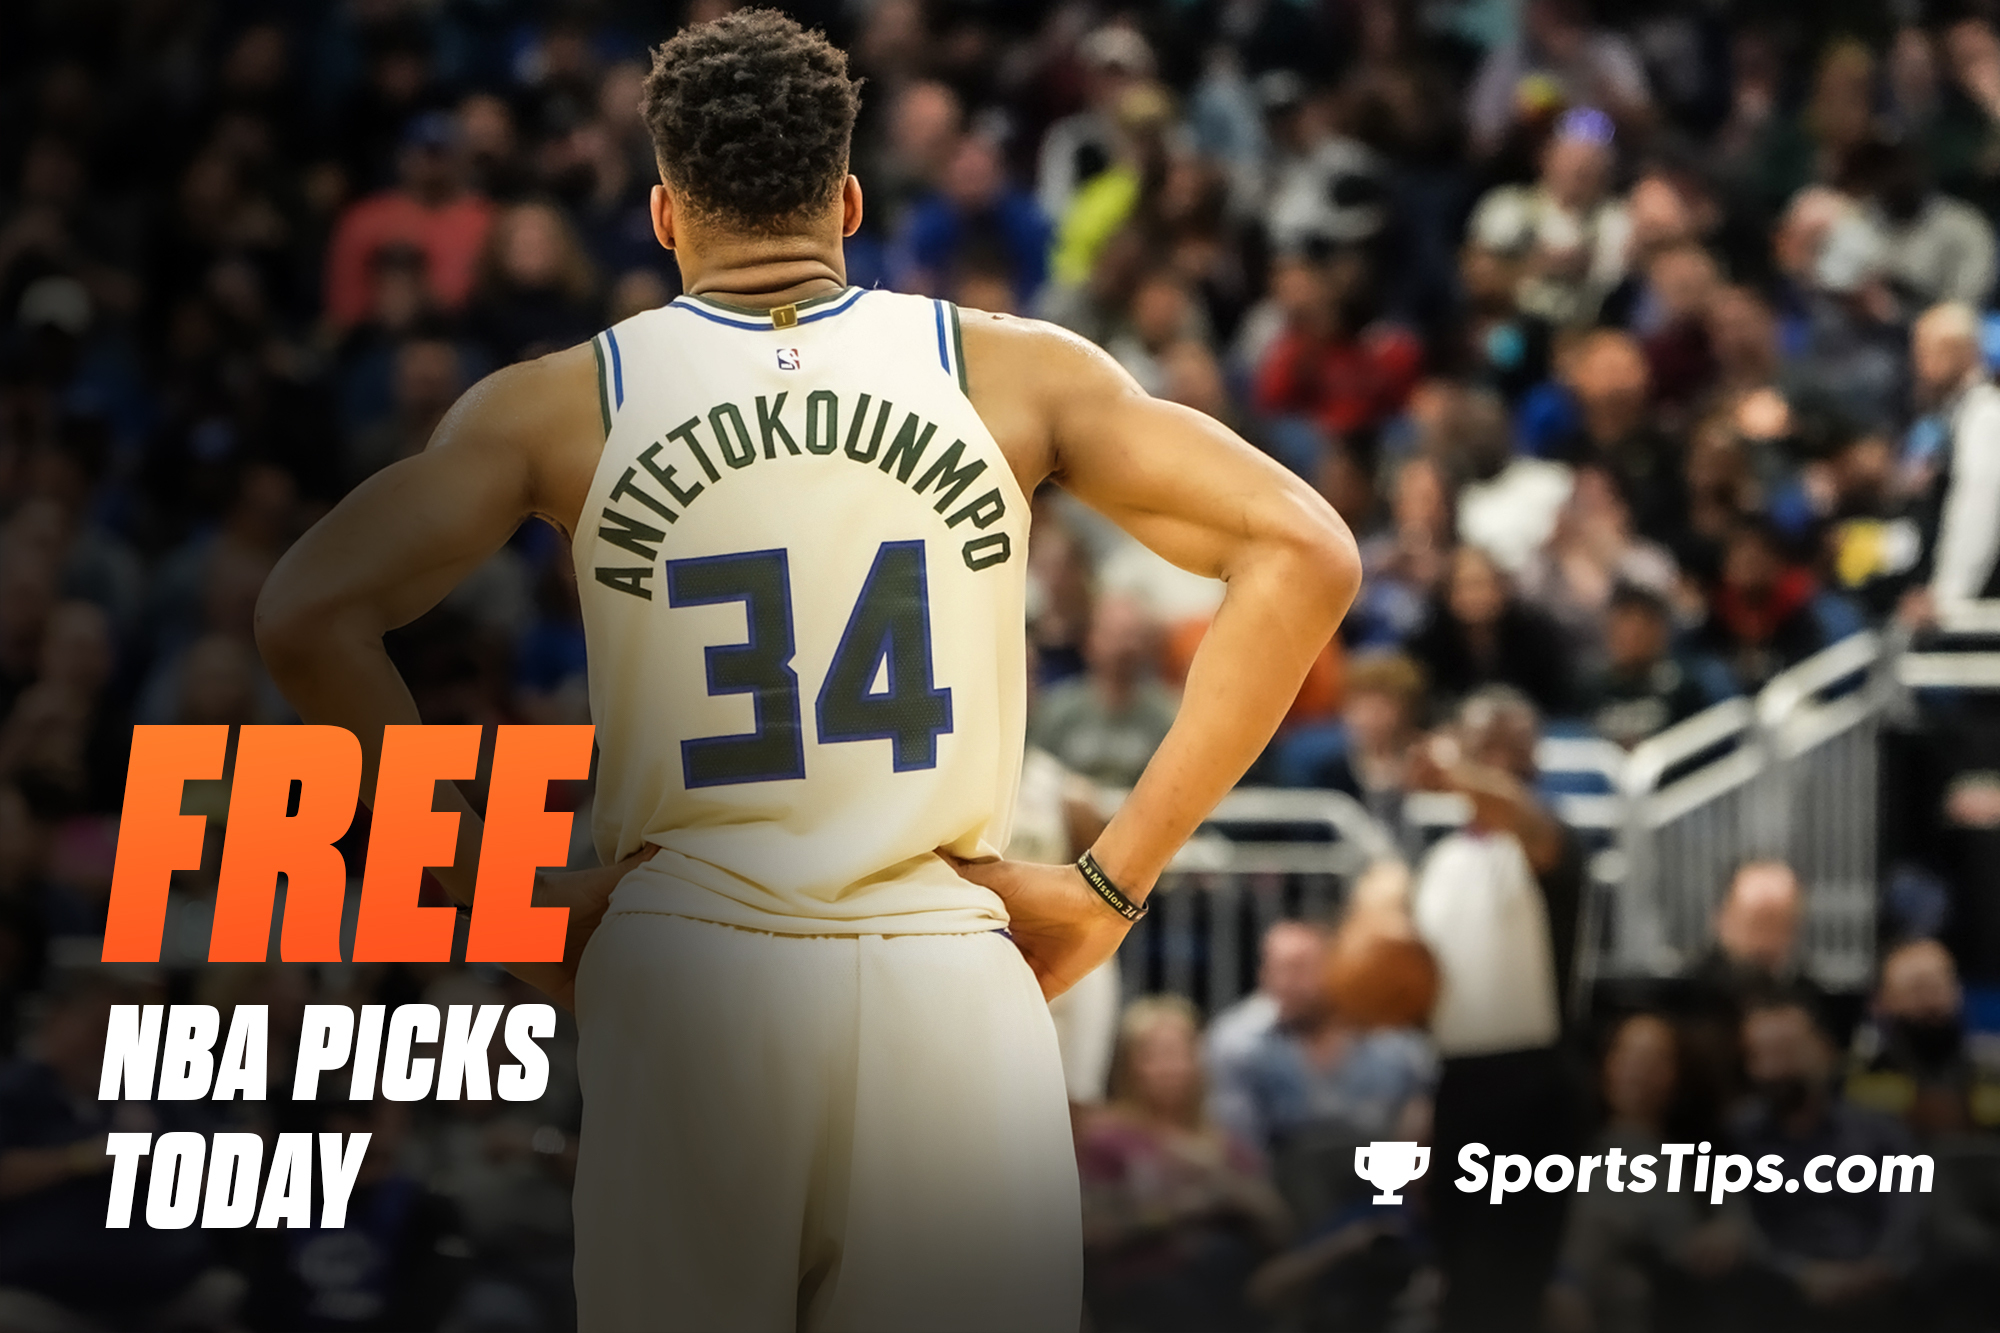 Free NBA Picks Today for Wednesday, January 13th, 2021